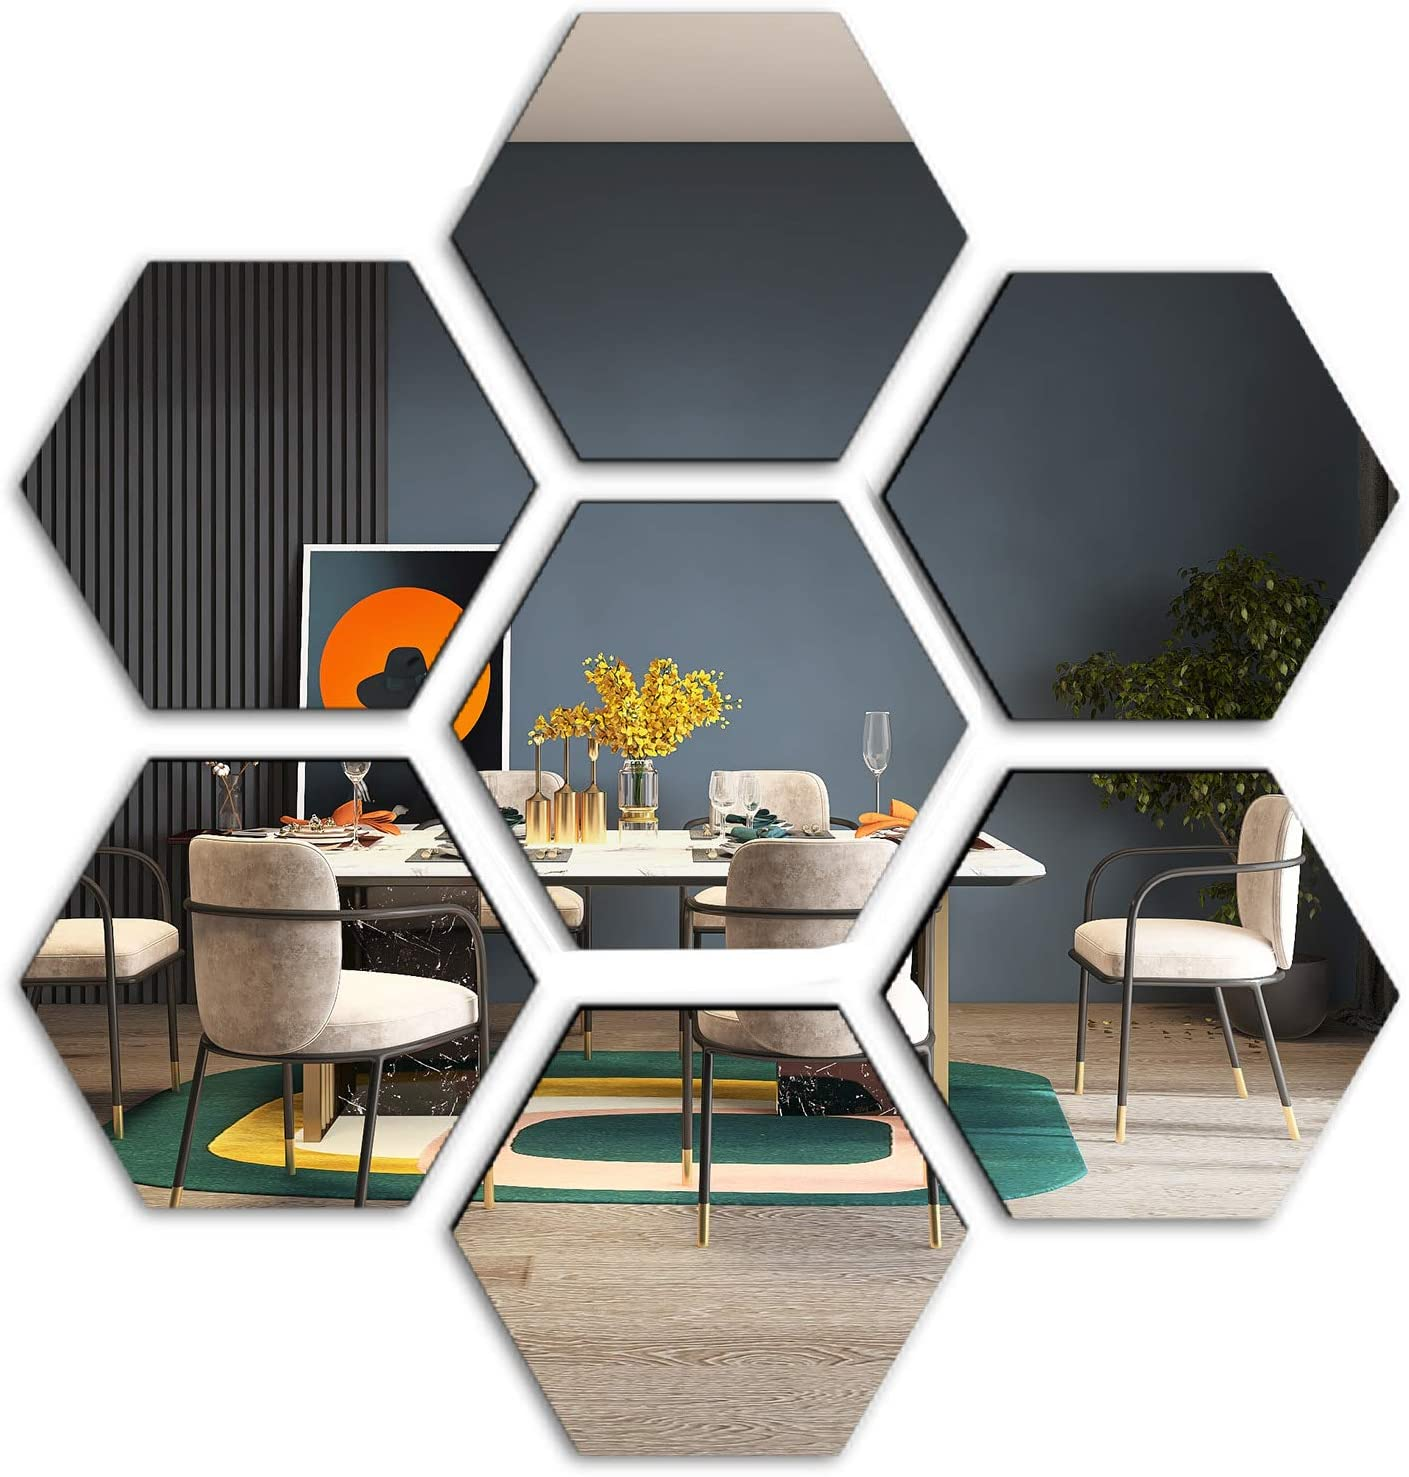 E EVENLIM 12 Pieces Hexagon Acrylic Mirrors 3D Wall Decor Tile Sticker, Silver Wall Decals for Bedroom Living Dining Bath Room Decorations Aesthetic for Teen Girls boy (7.9''x6.7''x4'')…